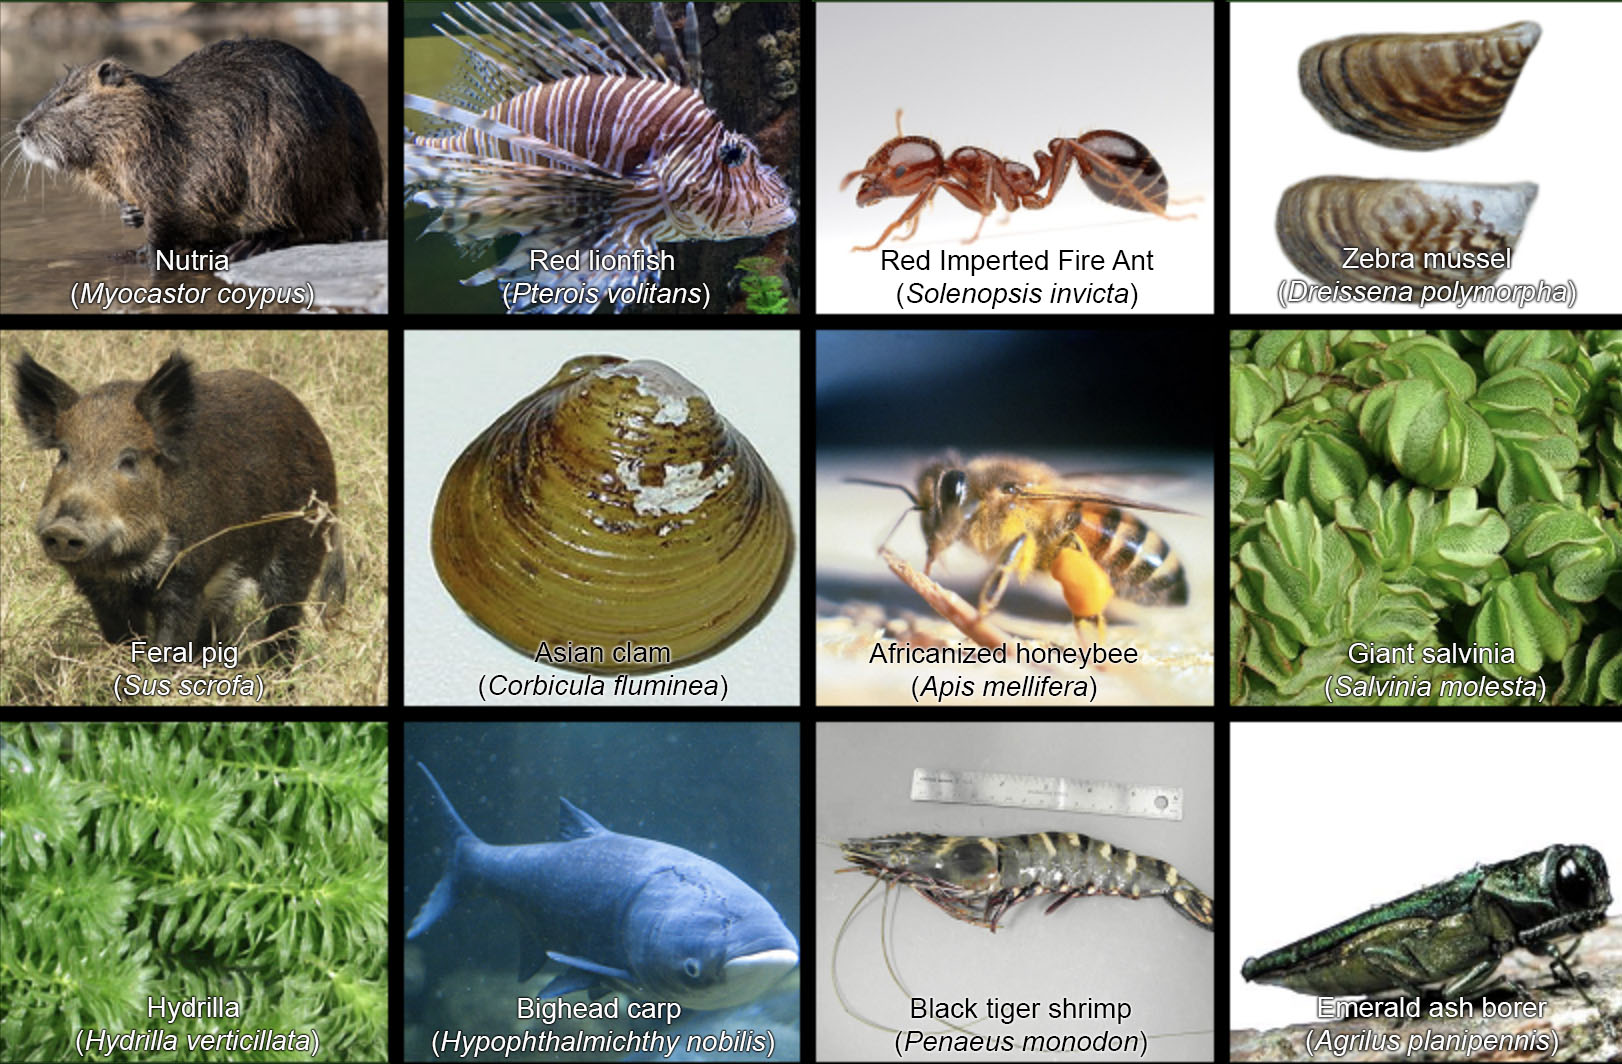 Texas invasive. modification of image from sporcle.com